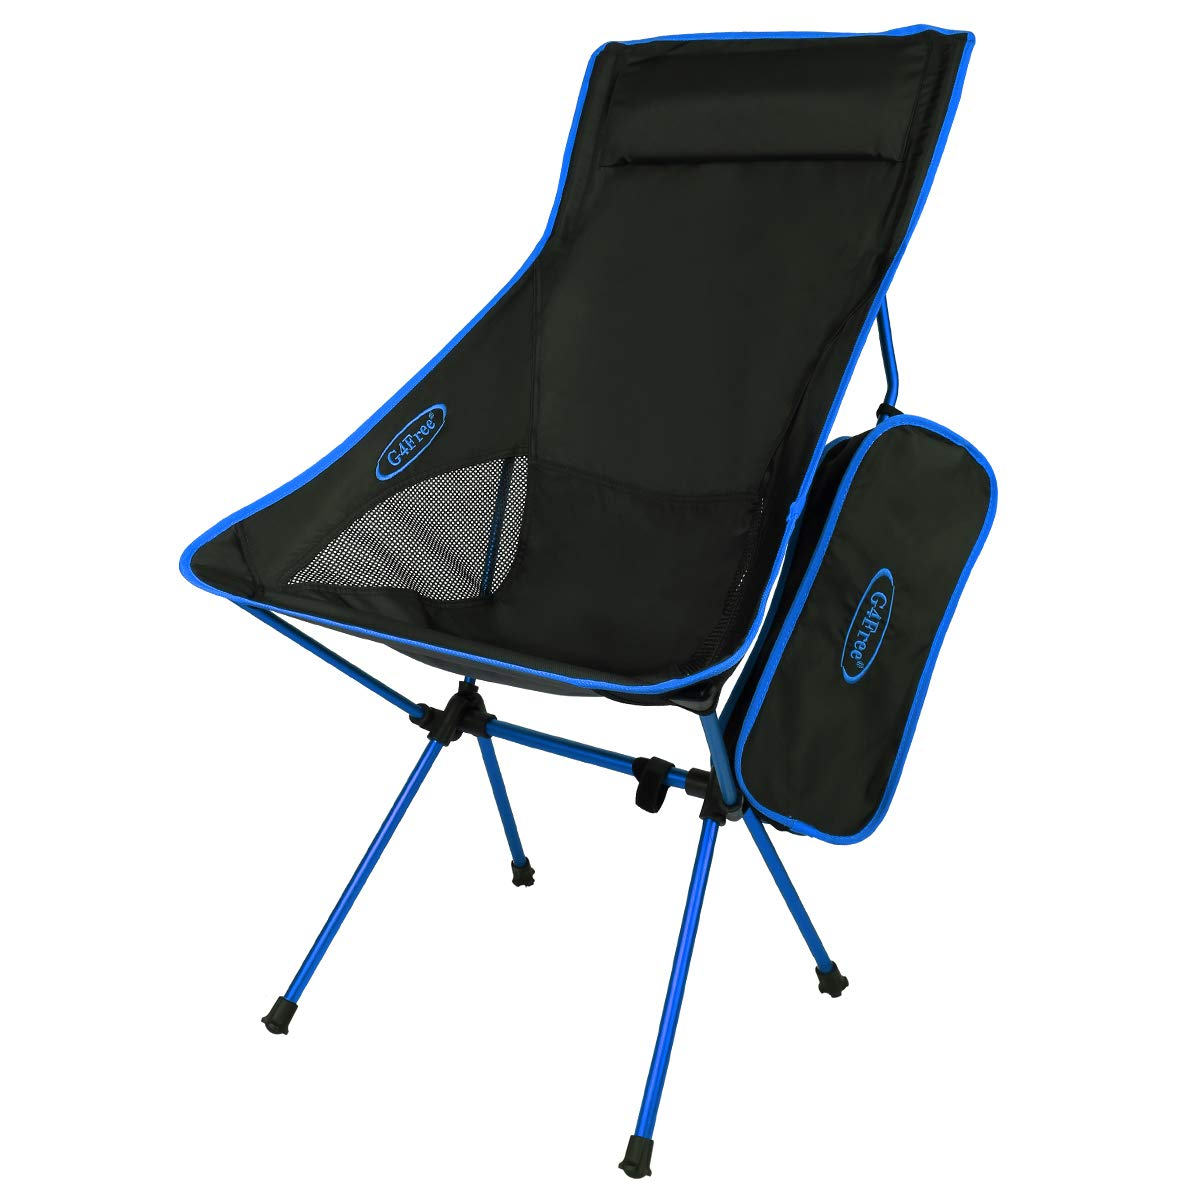 G4Free Lightweight Portable Camping Chair Outdoor Folding Backpacking High Back Camp Lounge Chairs with Headrest for Sports Picnic Beach Hiking Fishing